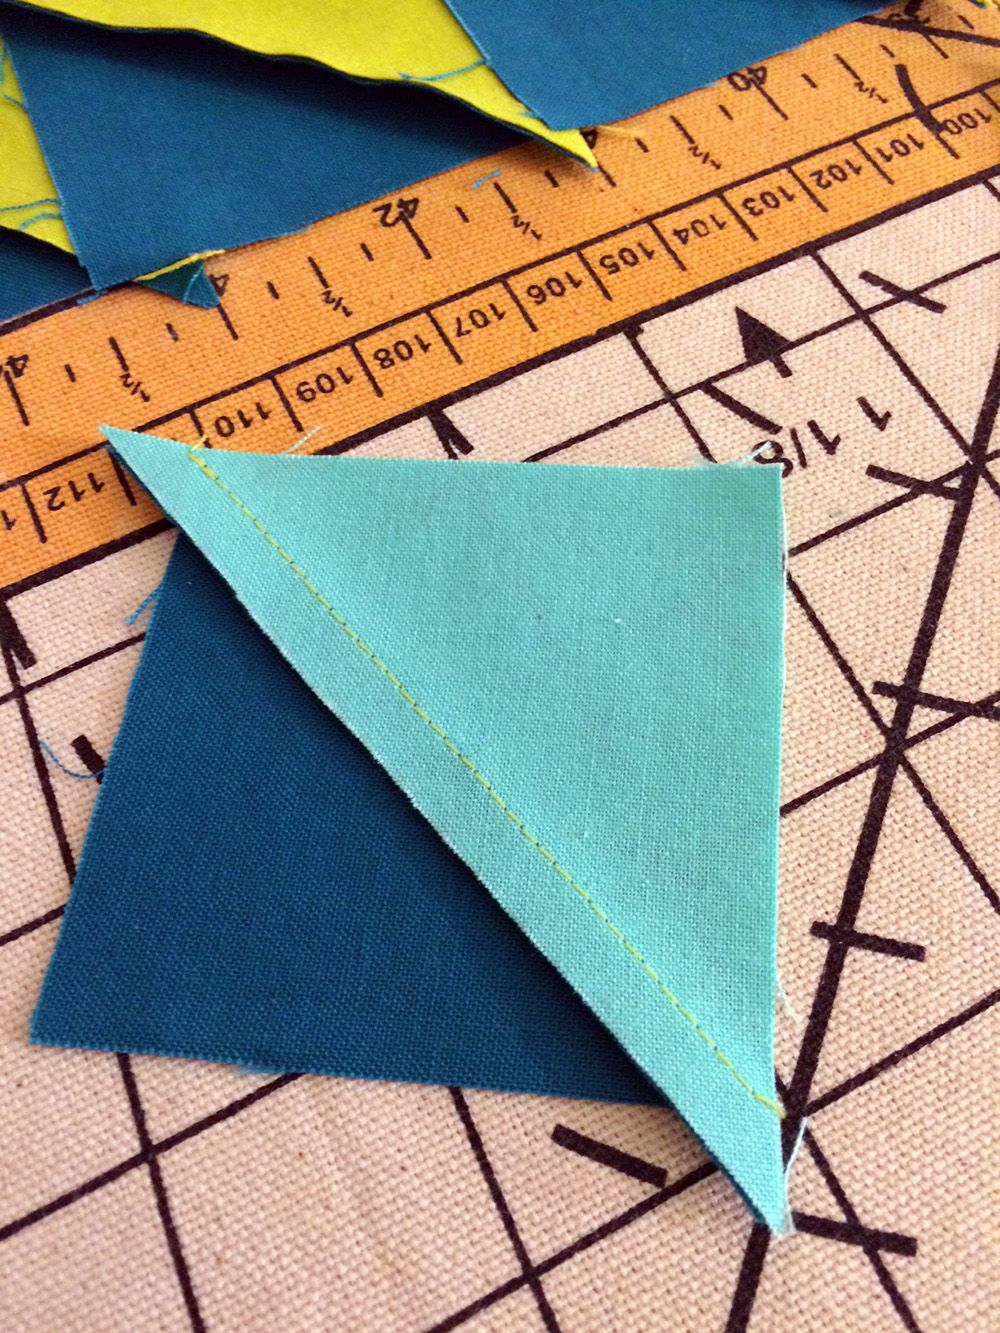 Sewing Shortcuts For Making A Chic Chevron Pillow Easy